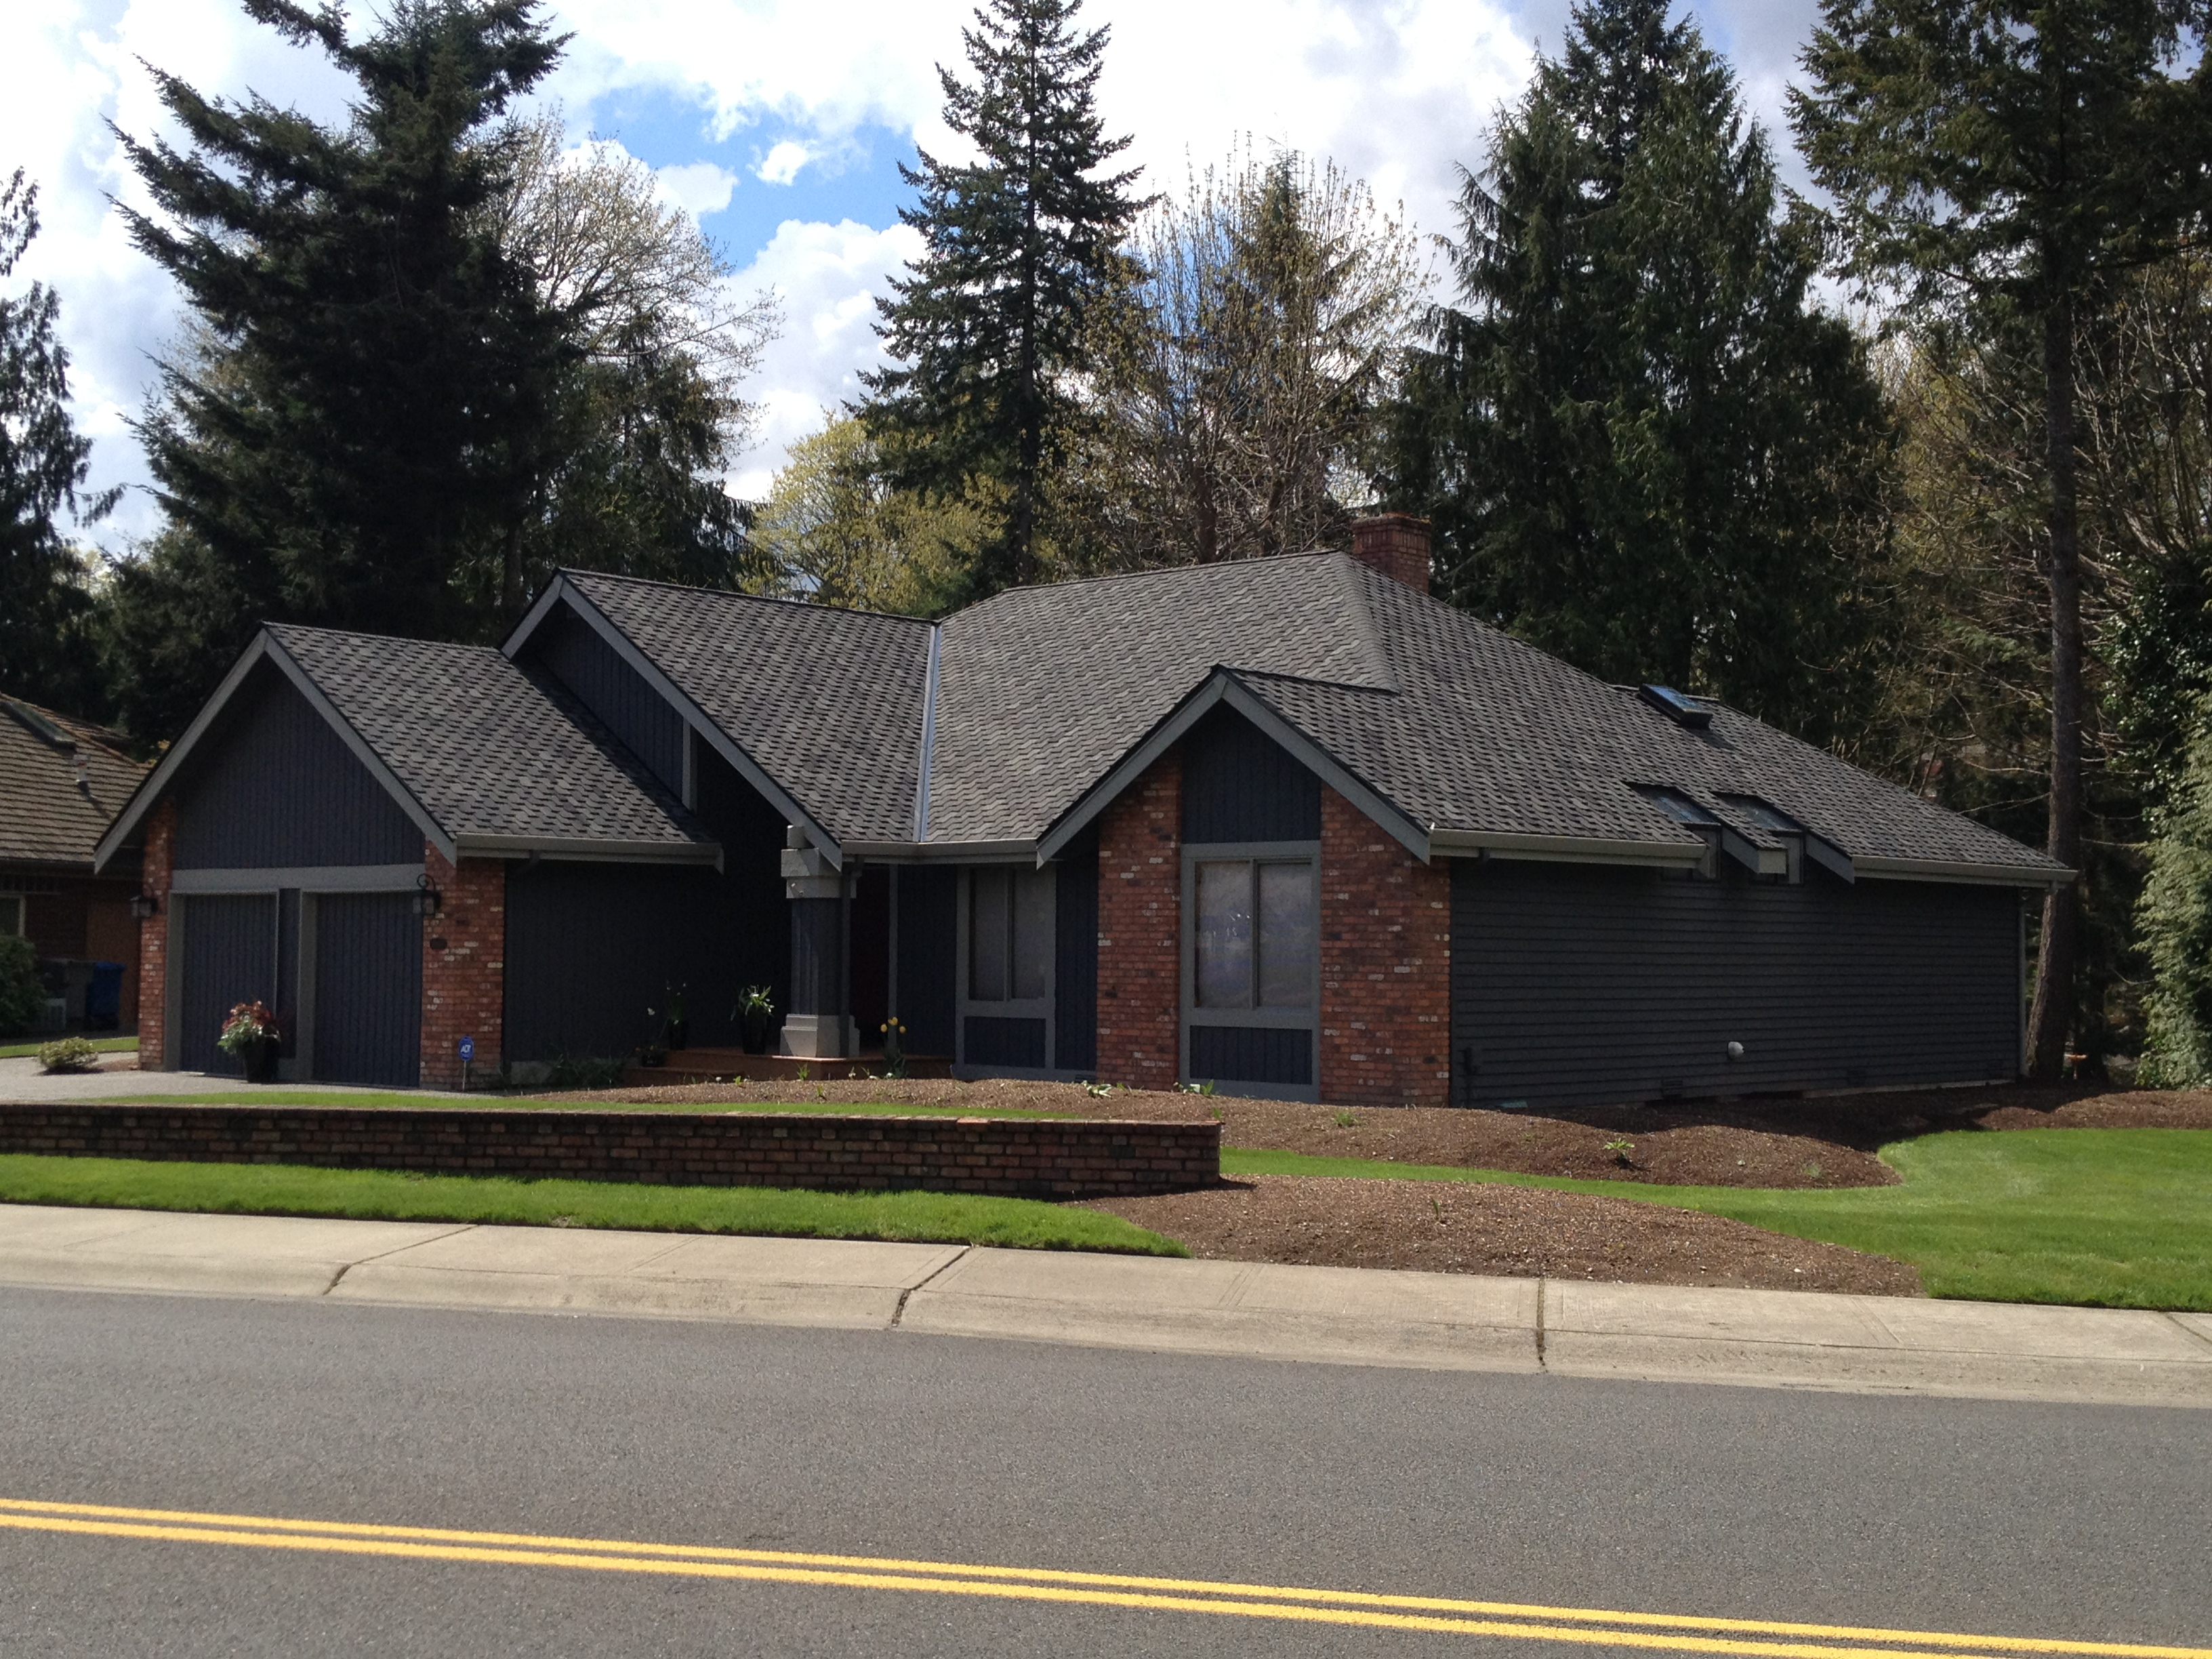 Roofing Contractor In Spanaway Wa Chase Construction